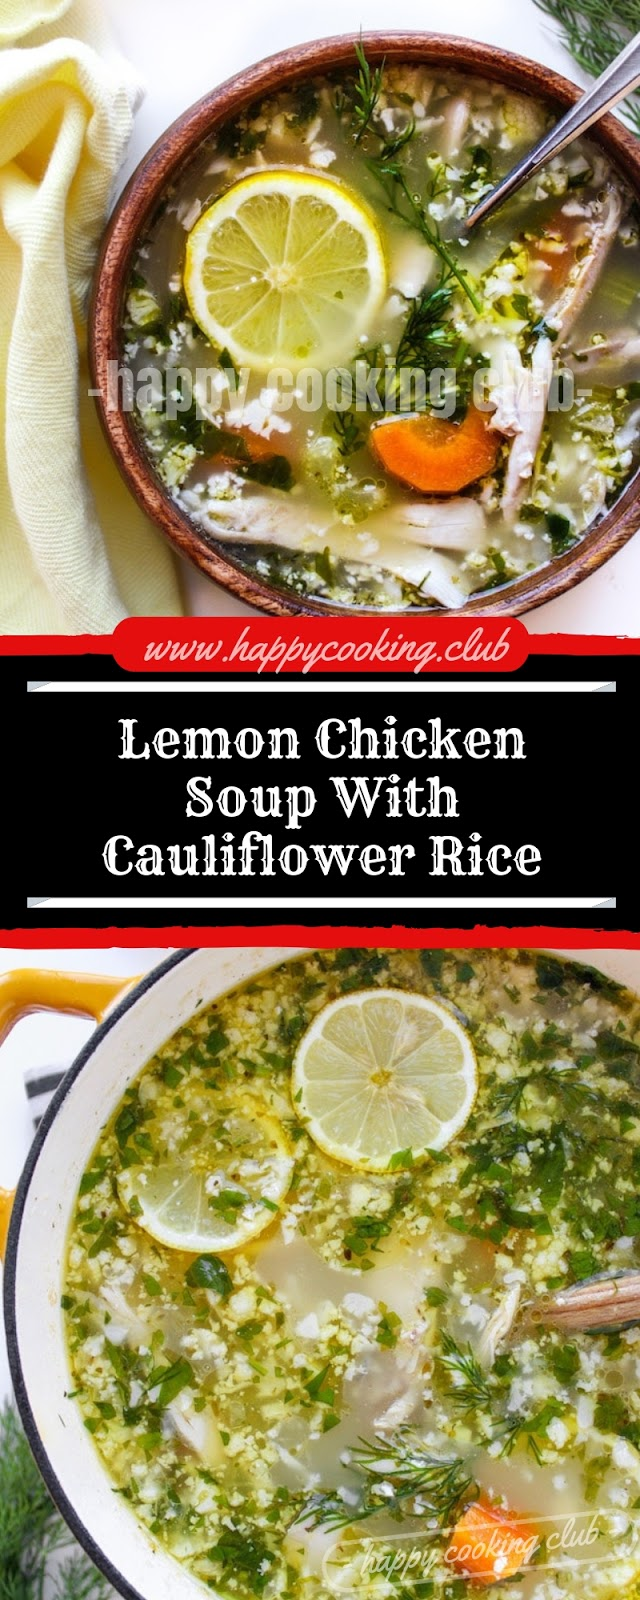 Lemon Chicken Soup With Cauliflower Rice